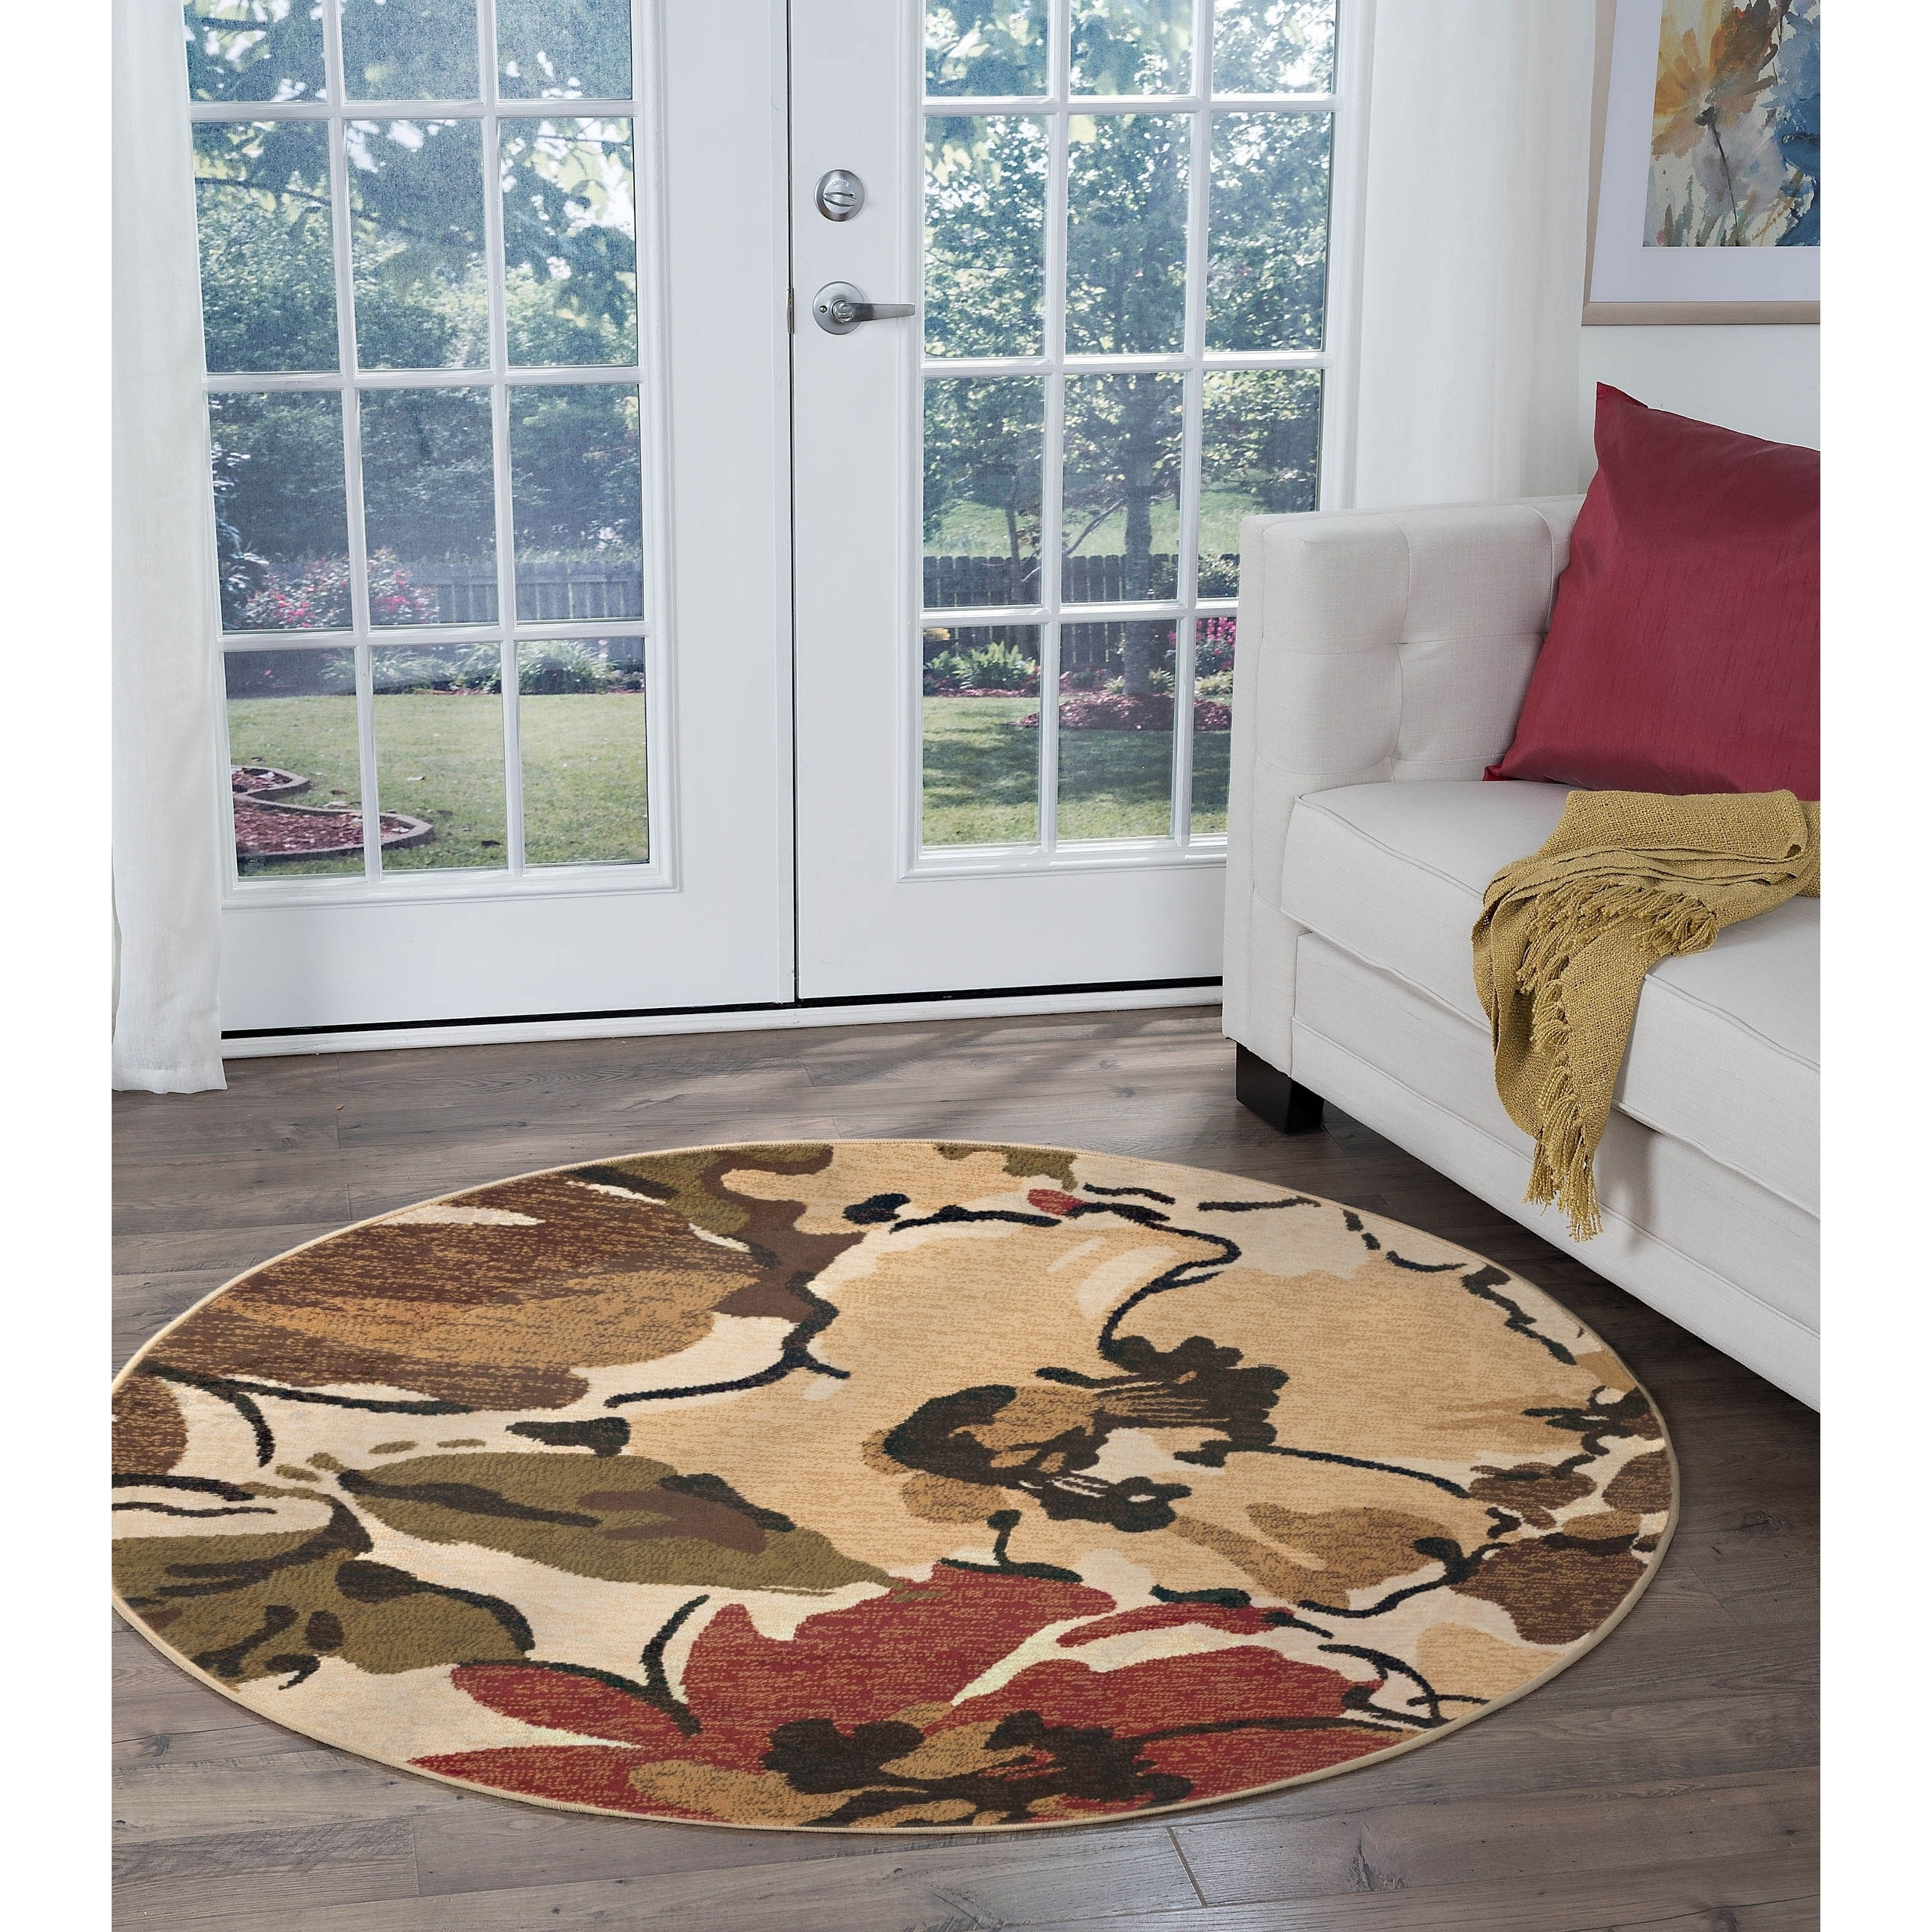 Image of: Shop Alise Rugs Lagoon Contemporary Floral Round Area Rug 7 10 X 7 10 Overstock 9064628